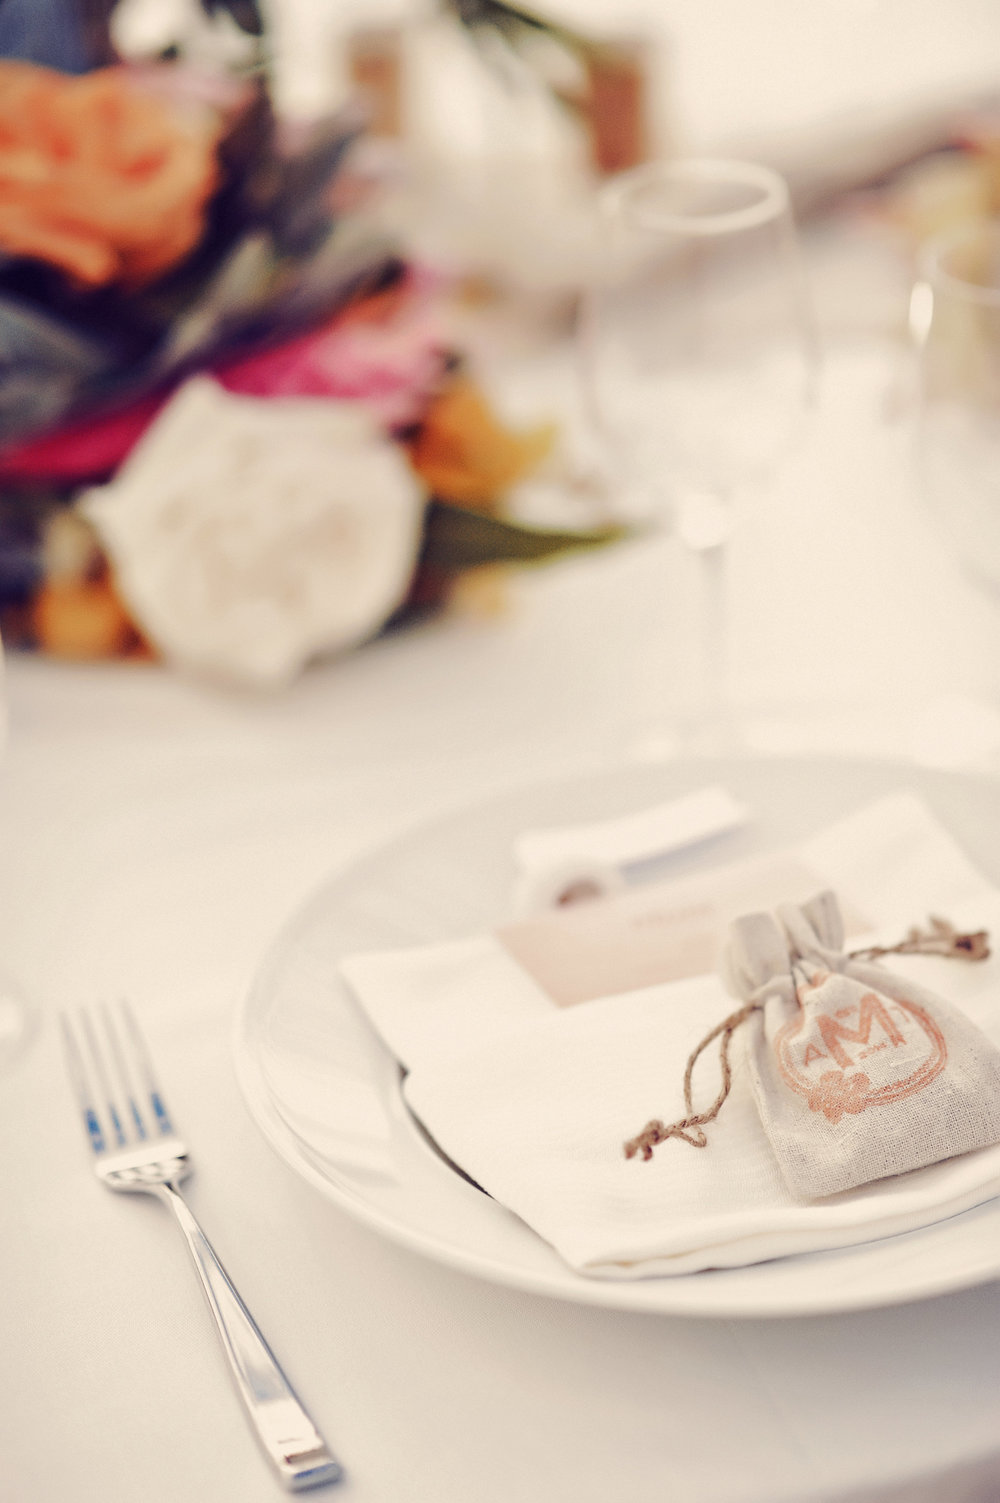 unqiue_place_setting_wedding_favors_aspiring_kennedy_tamiz_photography